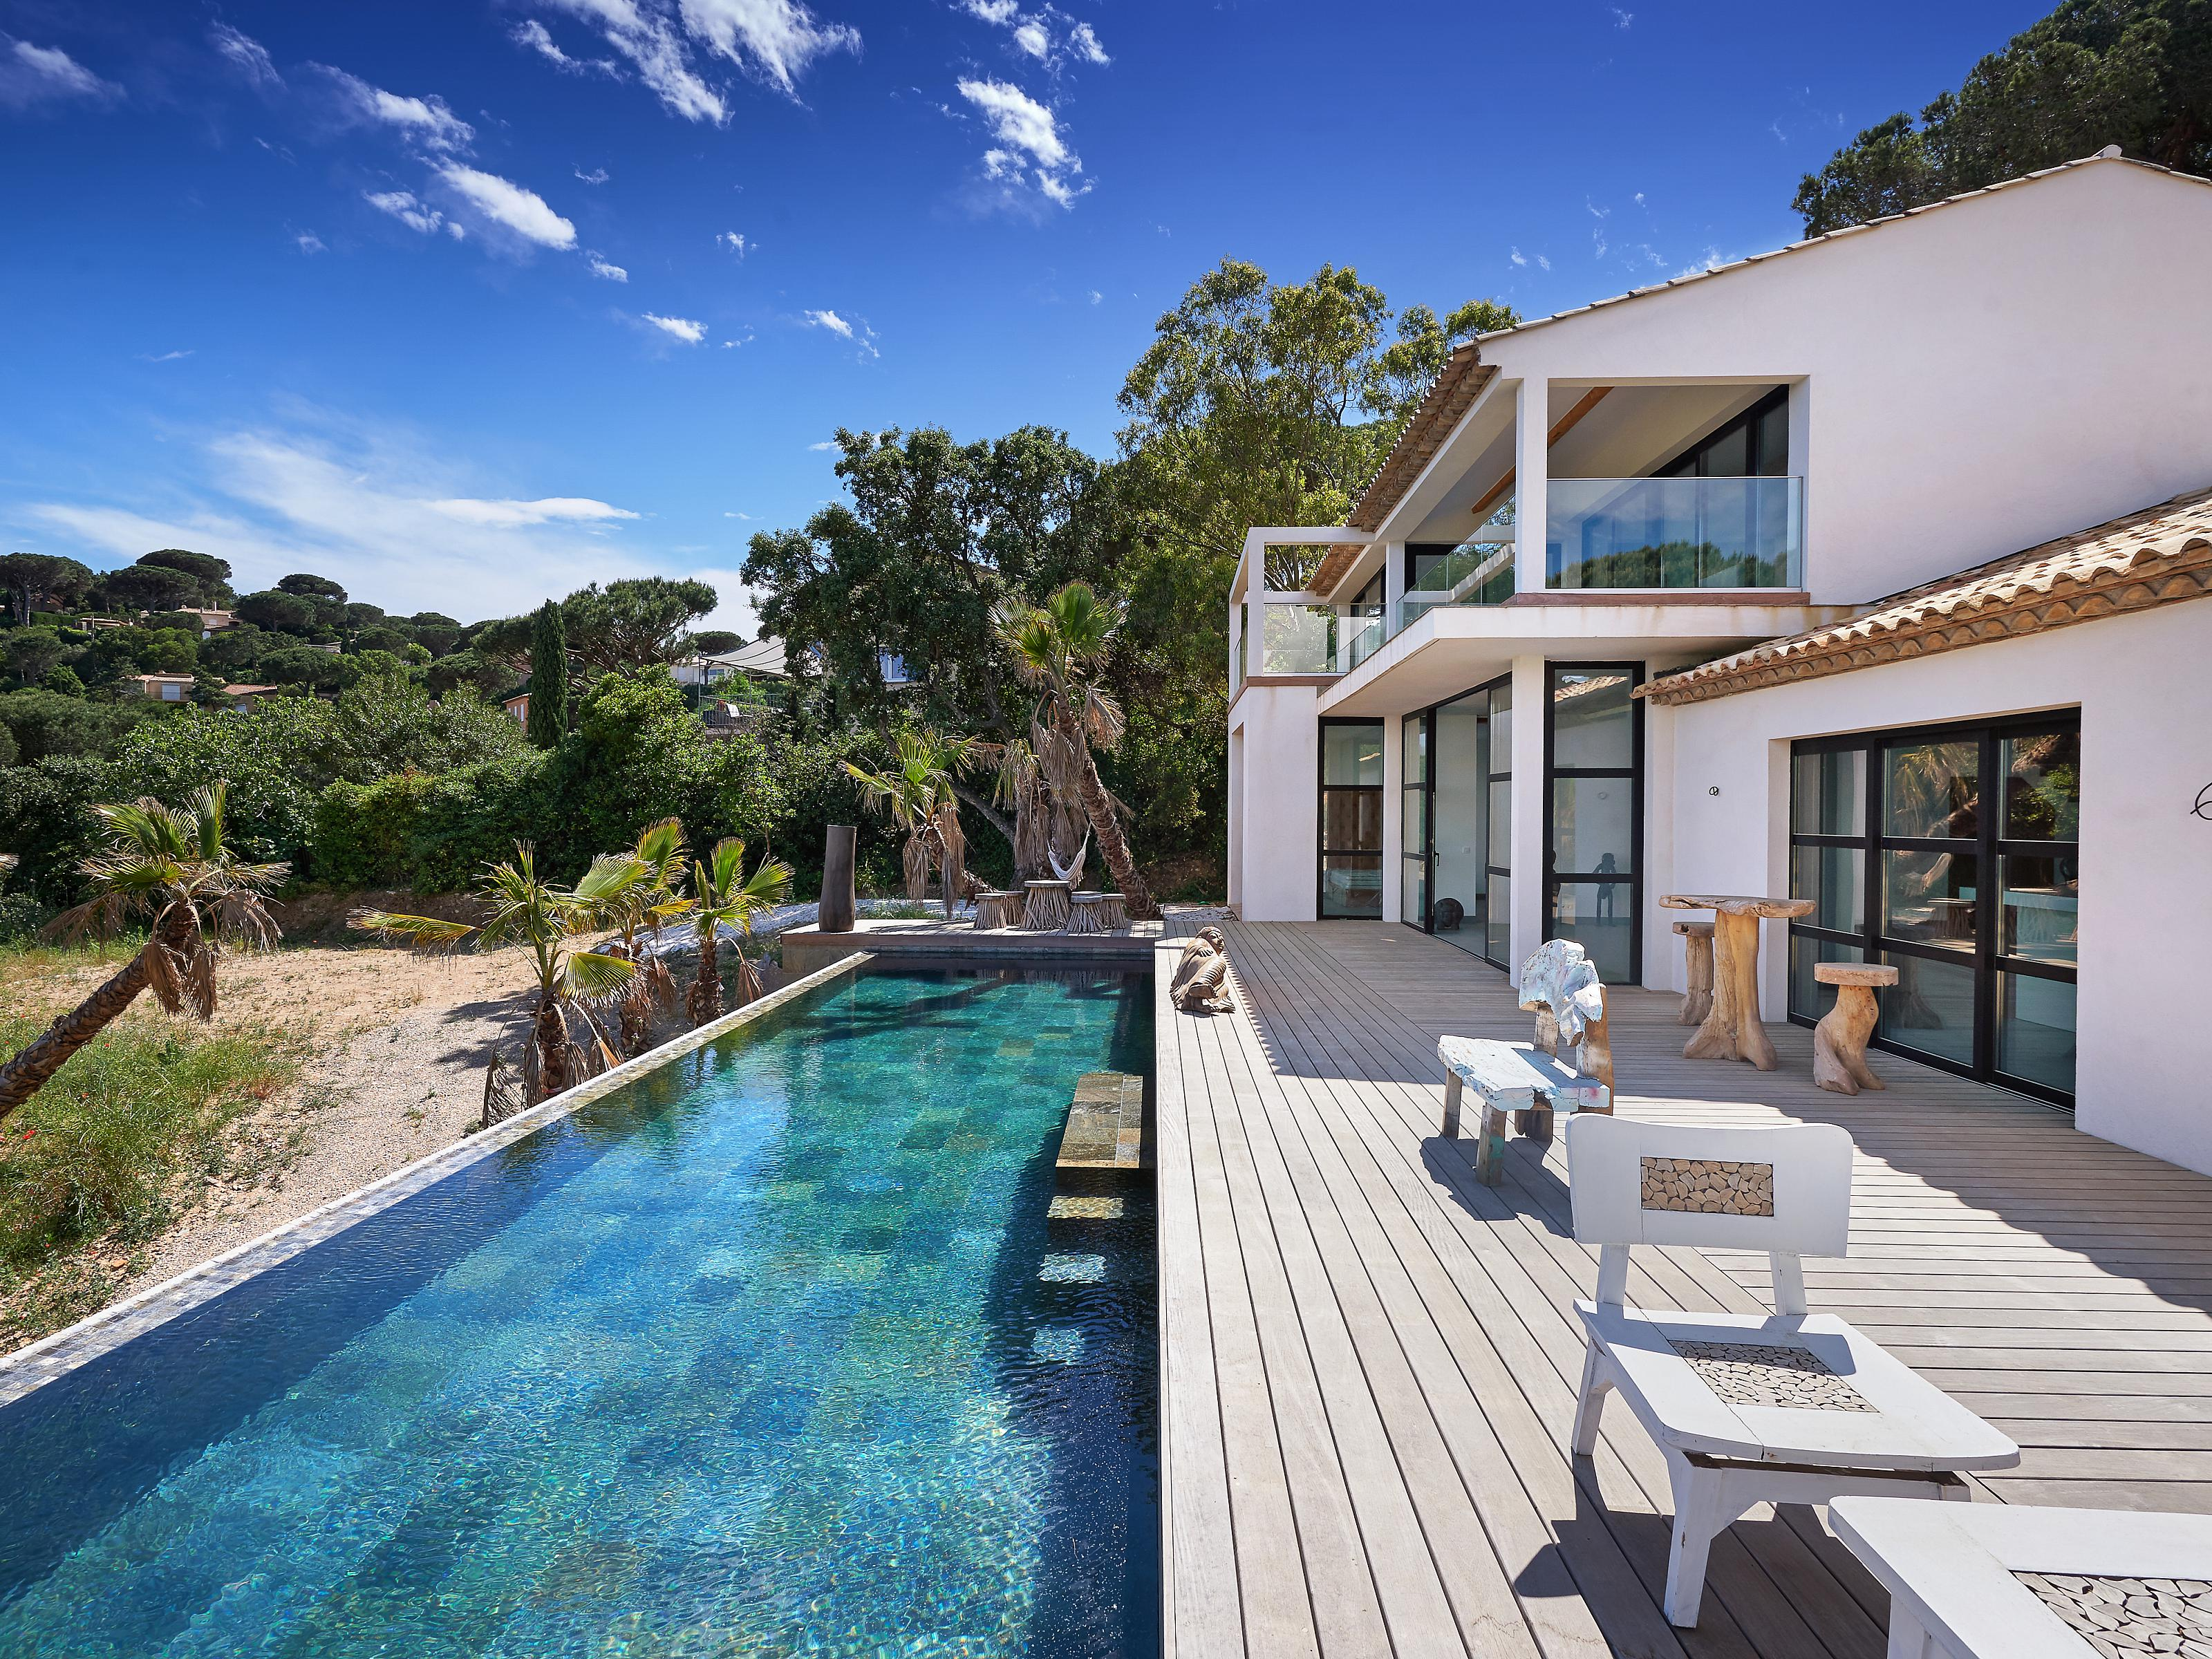 Villa per Vendita alle ore Luxurious newly built property with wonderful seaviews Saint Maxime Other Provence-Alpes-Cote D'Azur, Provenza-Alpi-Costa Azzurra 83120 Francia